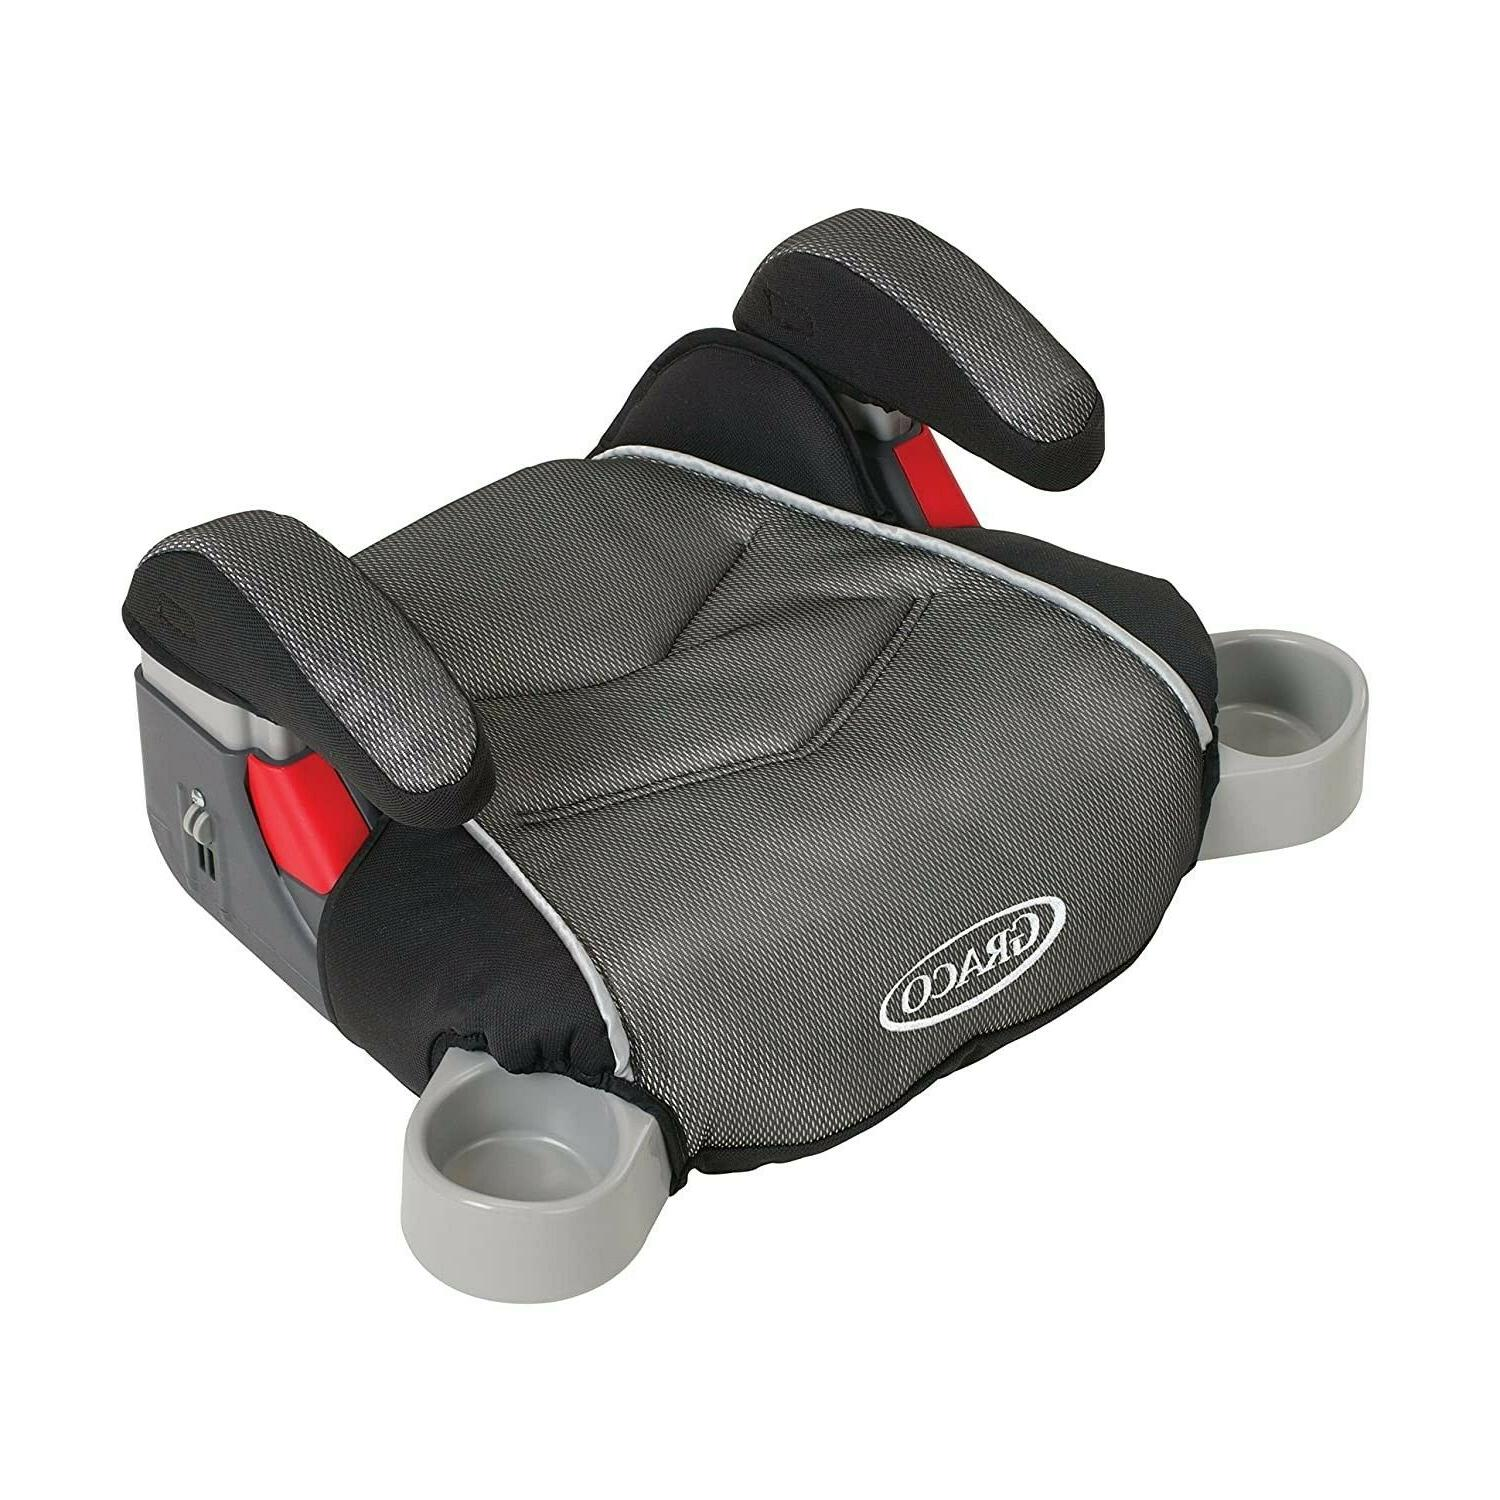 galaxy booster car seat kids safety free